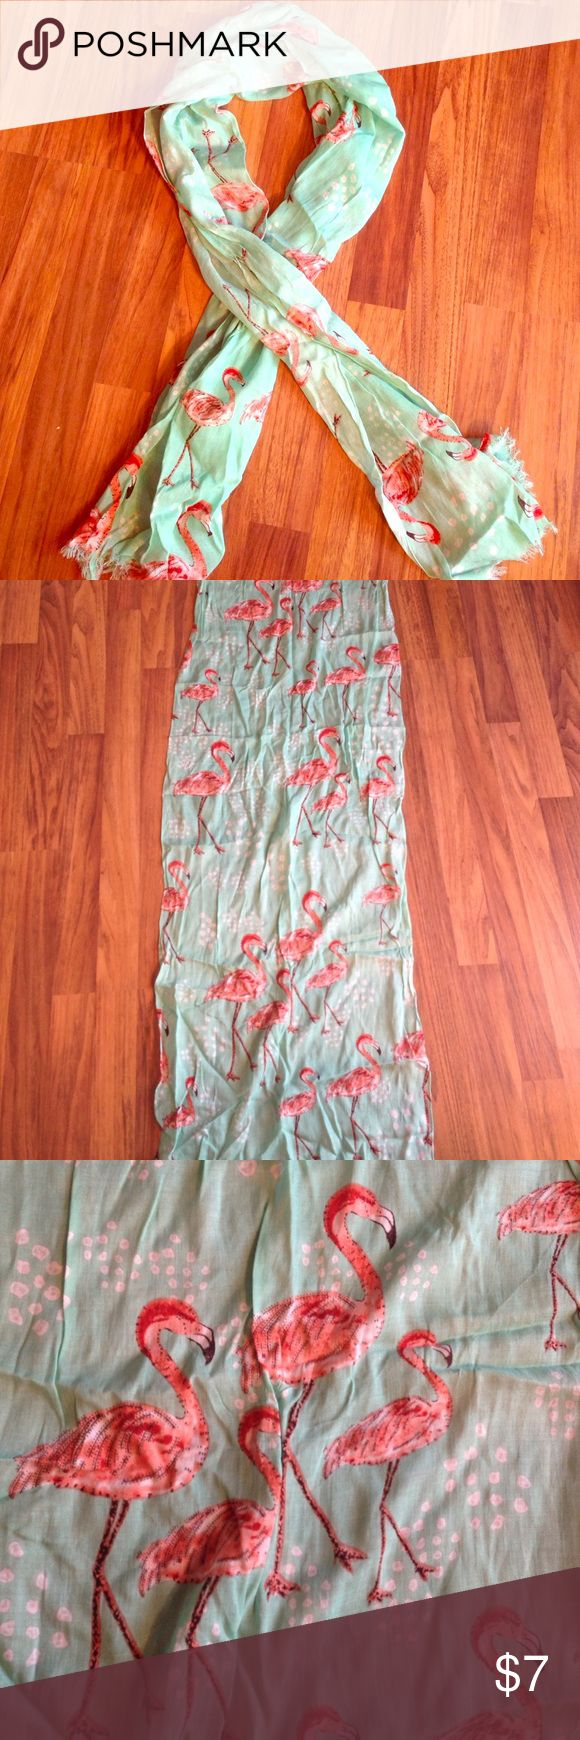 Flamingo scarf Mint and coral flamingo print scarf. This is a scarf designed to loop over the neck. Similar size to that of a Lilly Pulitzer Murfee scarf. Purchased at Cracker Barrel. Price firm unless bundled. 29 palms Accessories Scarves & Wraps